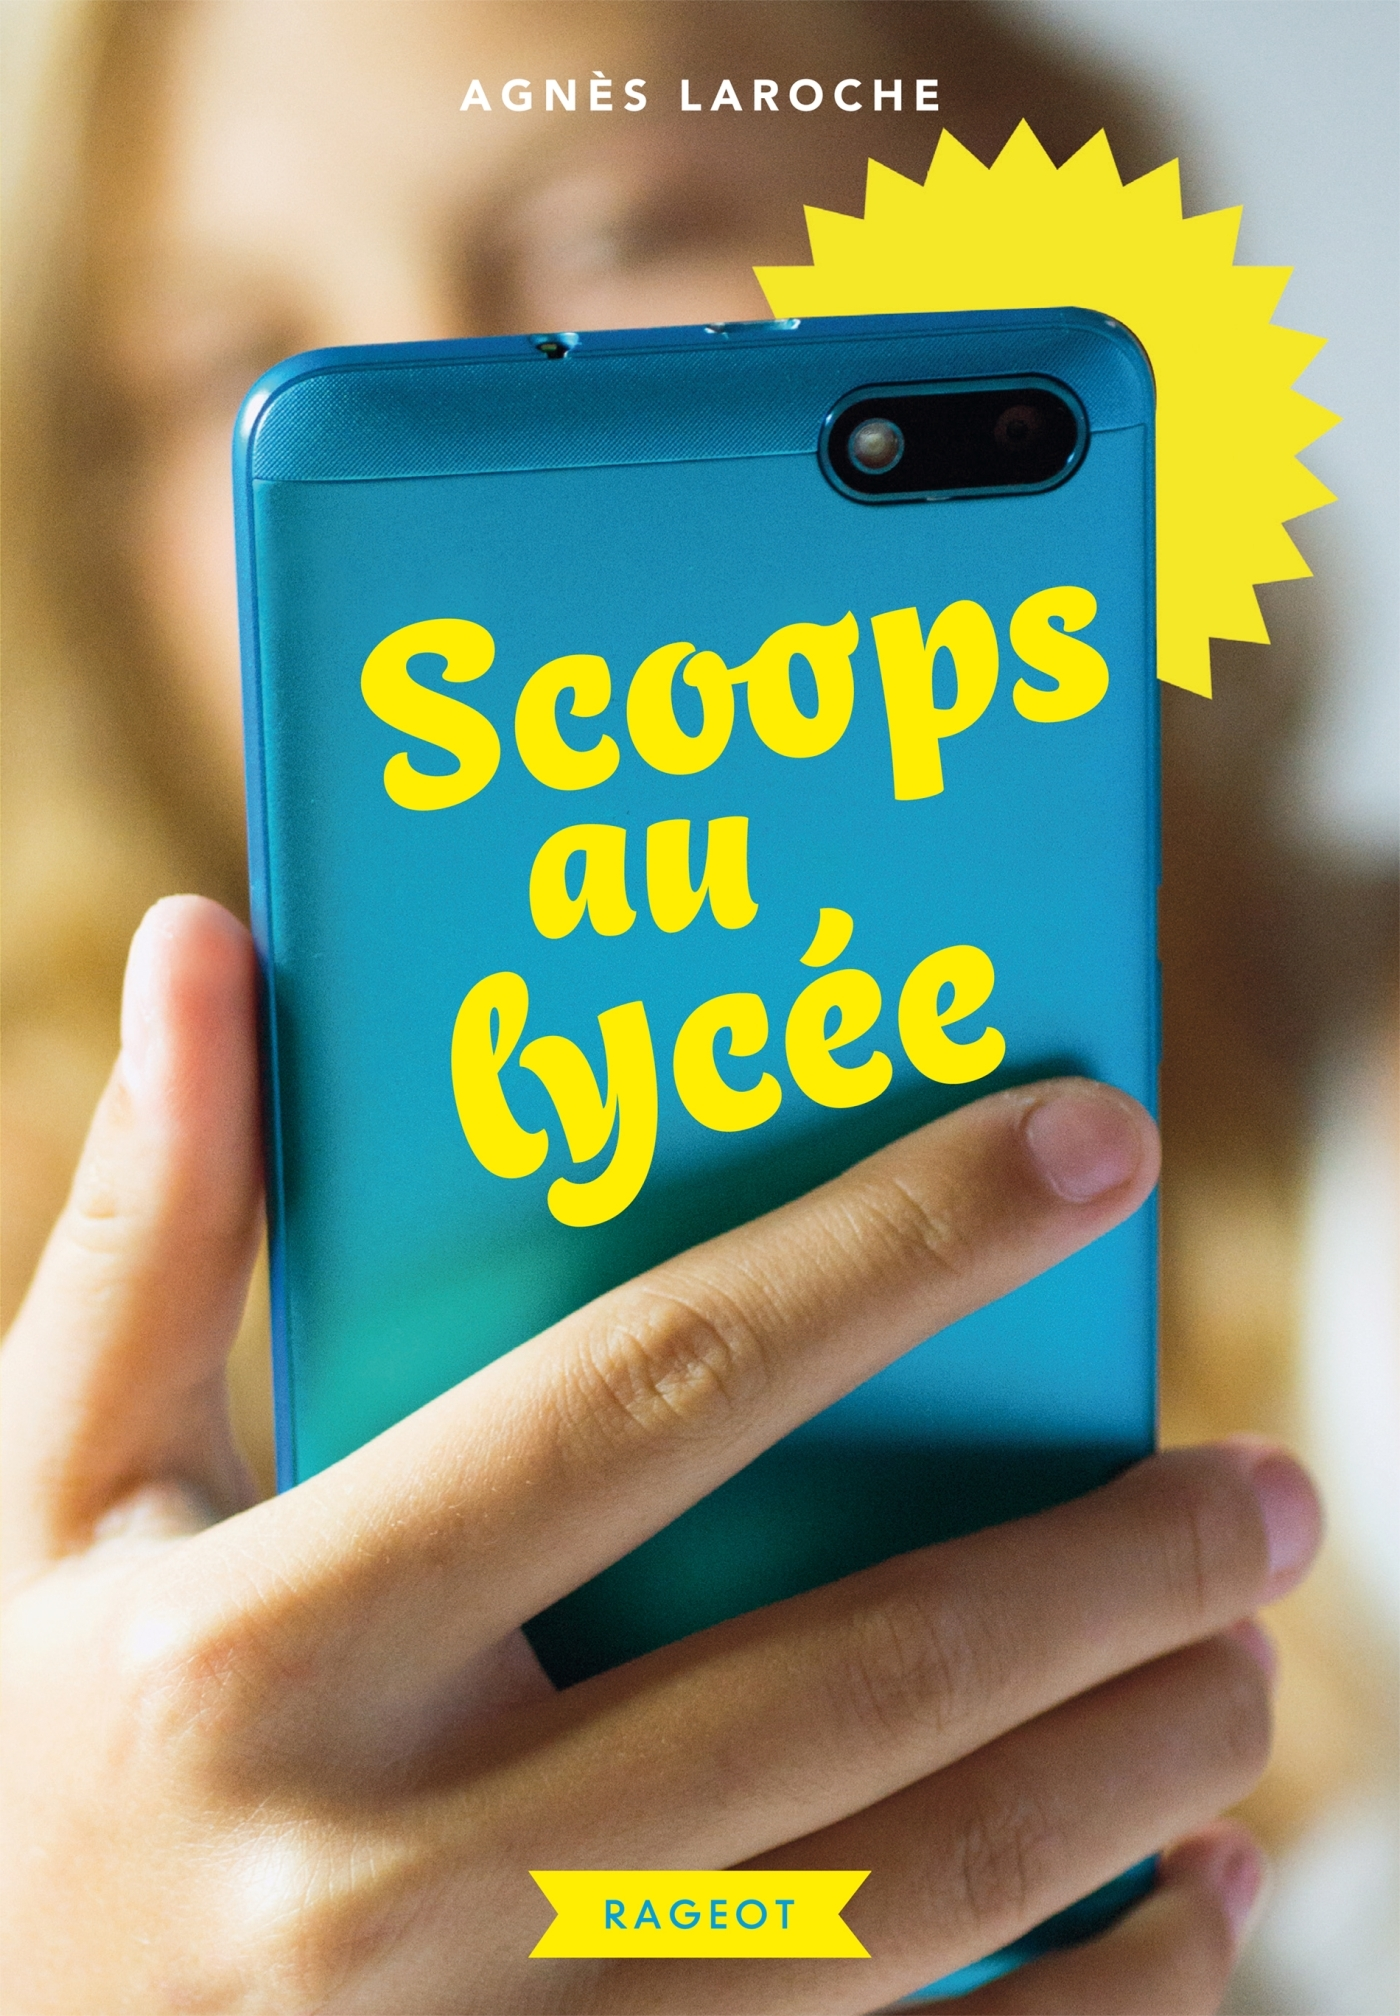 SCOOPS AU LYCEE